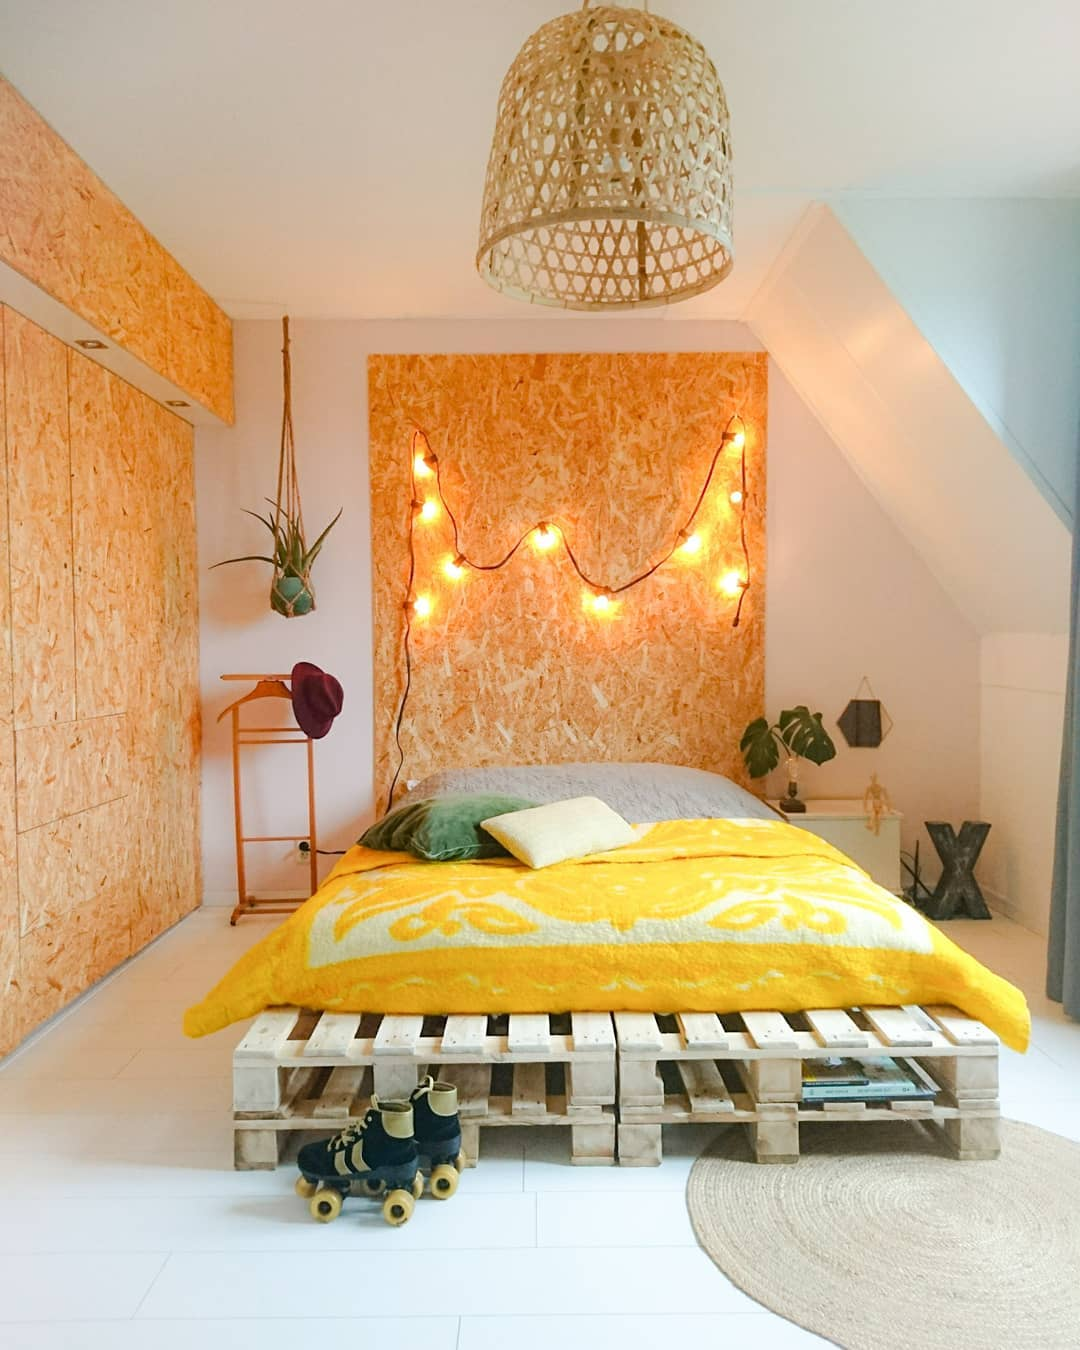 198 Instagram interieur inspiratie top 5